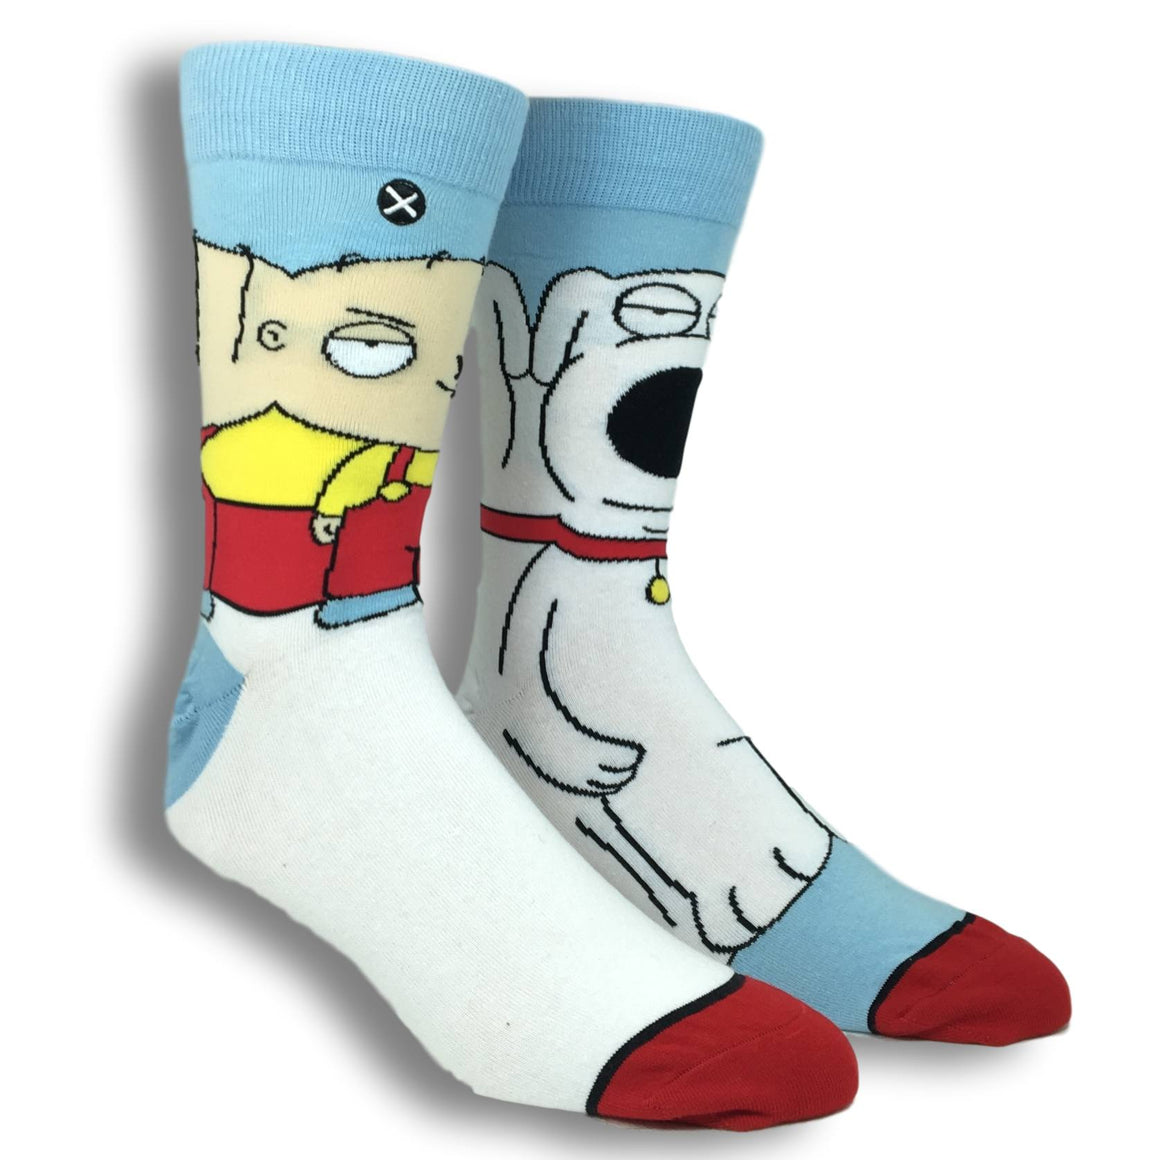 Family Guy Brian and Stewie 360 Socks - The Sock Spot